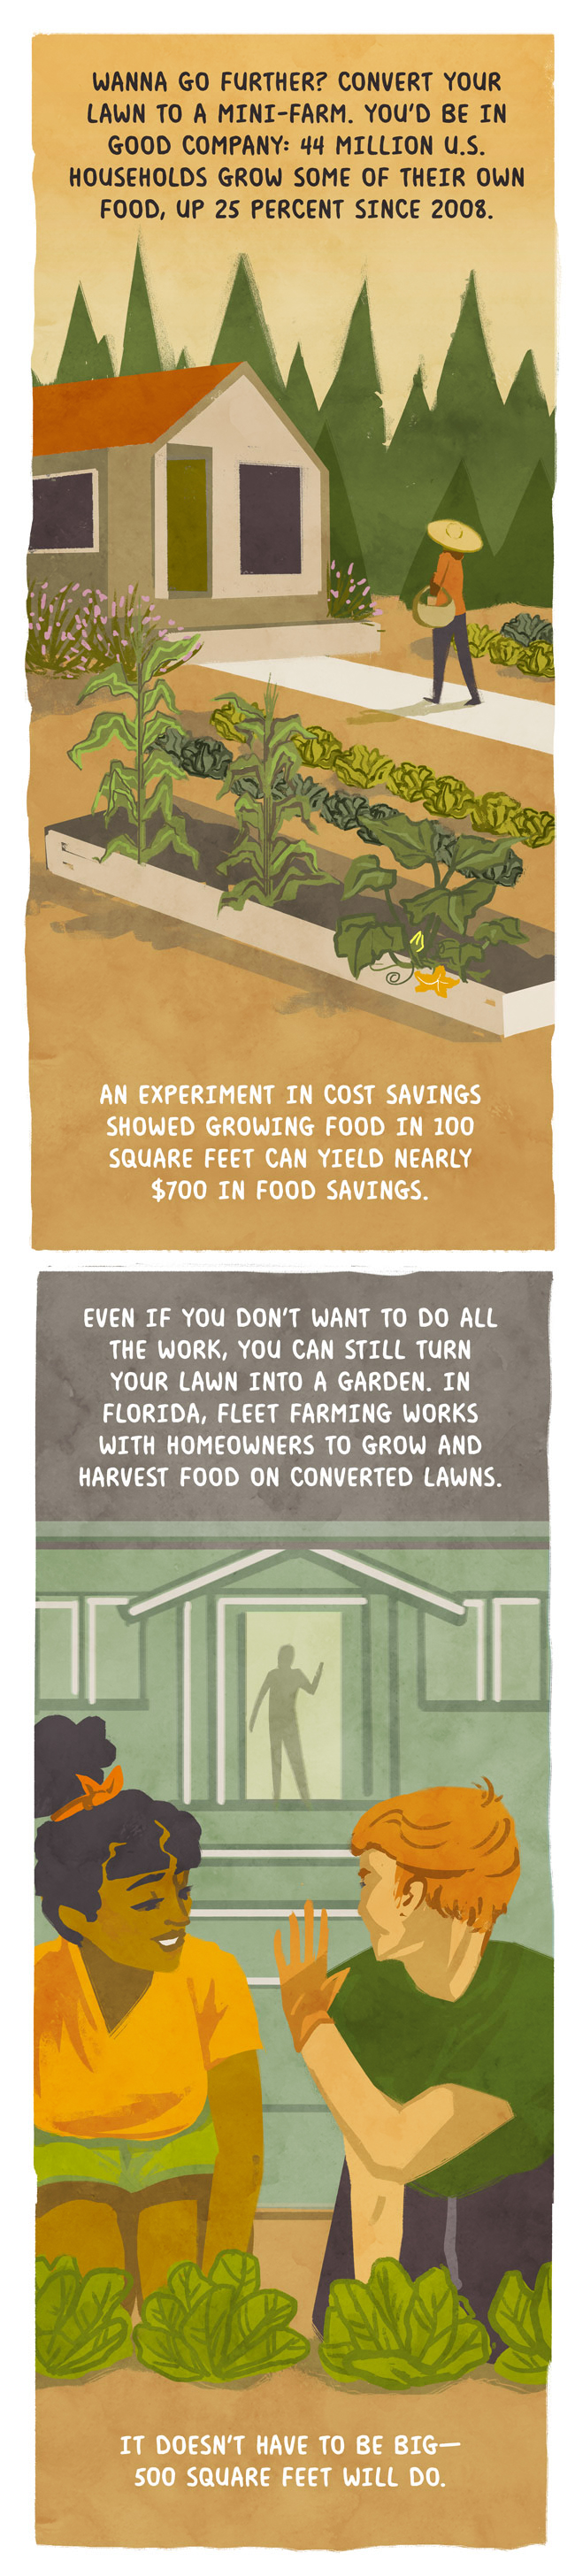 44 million US households grow some of their own food.